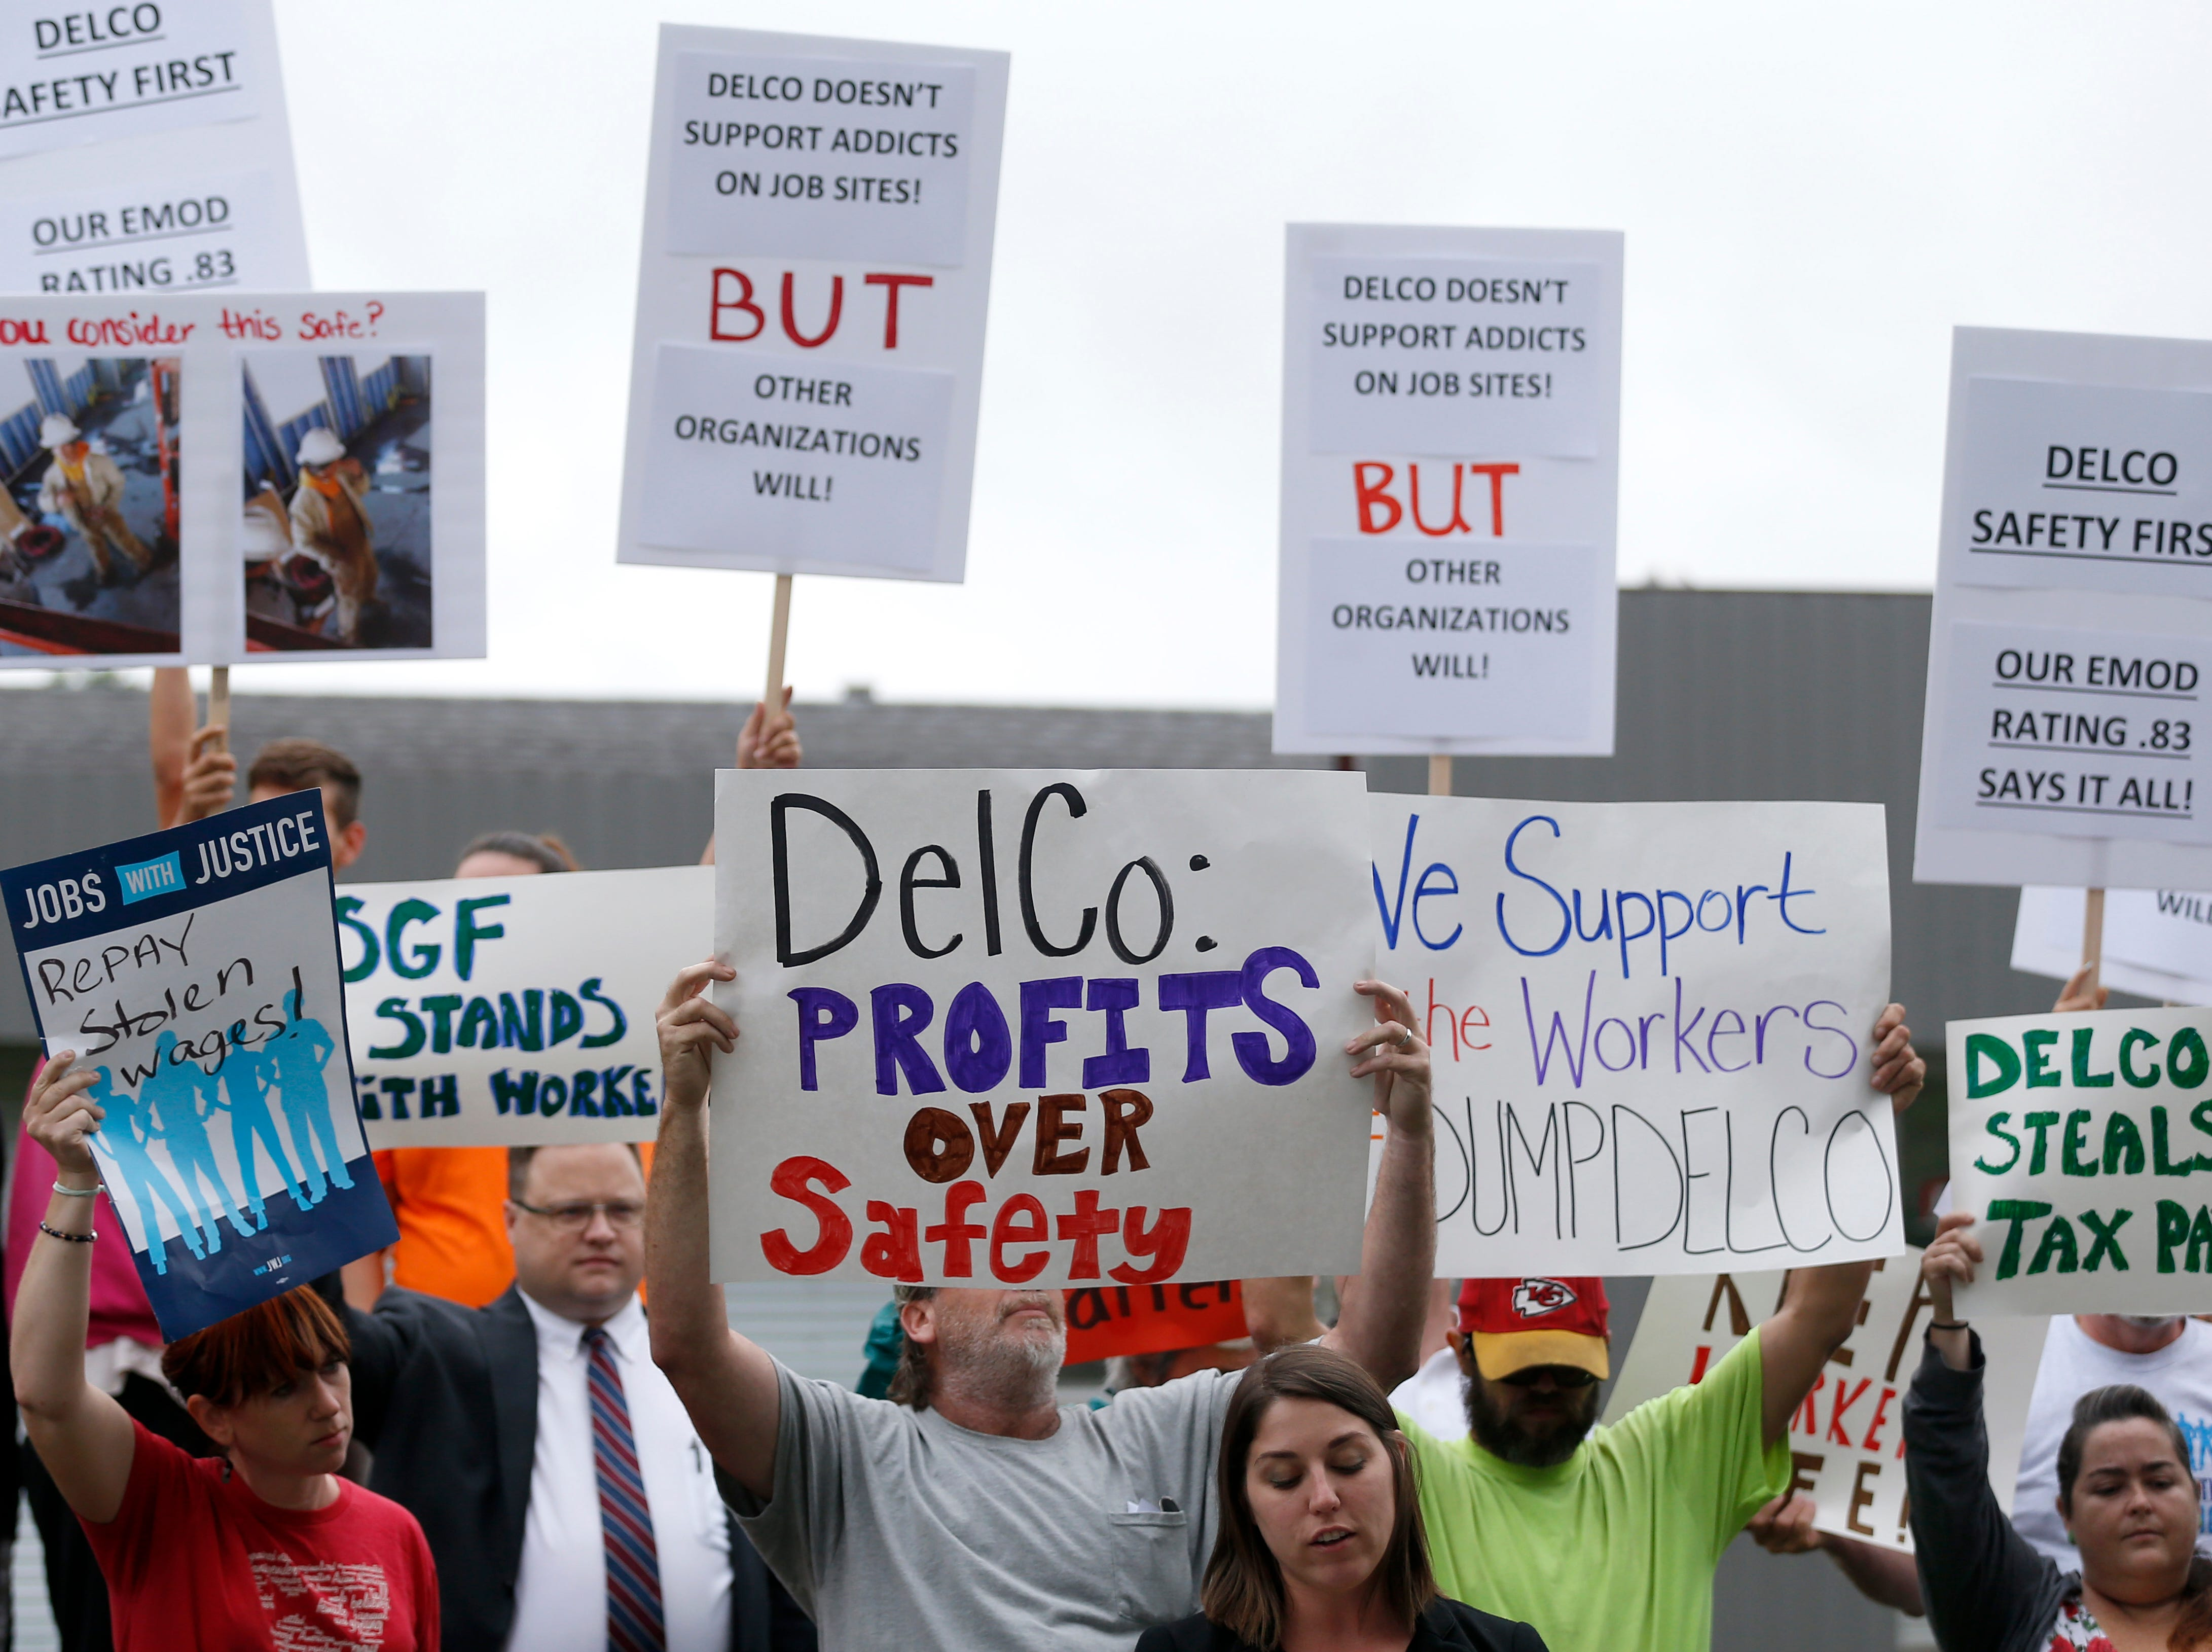 Rep. Crystal Quade, D-Springfield speaks to a group of protestors outside DelCo Construction on Tuesday, Aug. 14, 2018 while counter-protestors stand behind them. Protestors claimed that DelCo and its owner, Jeff Delmont, subject workers to unsafe conditions, low wages, and inadequate training.